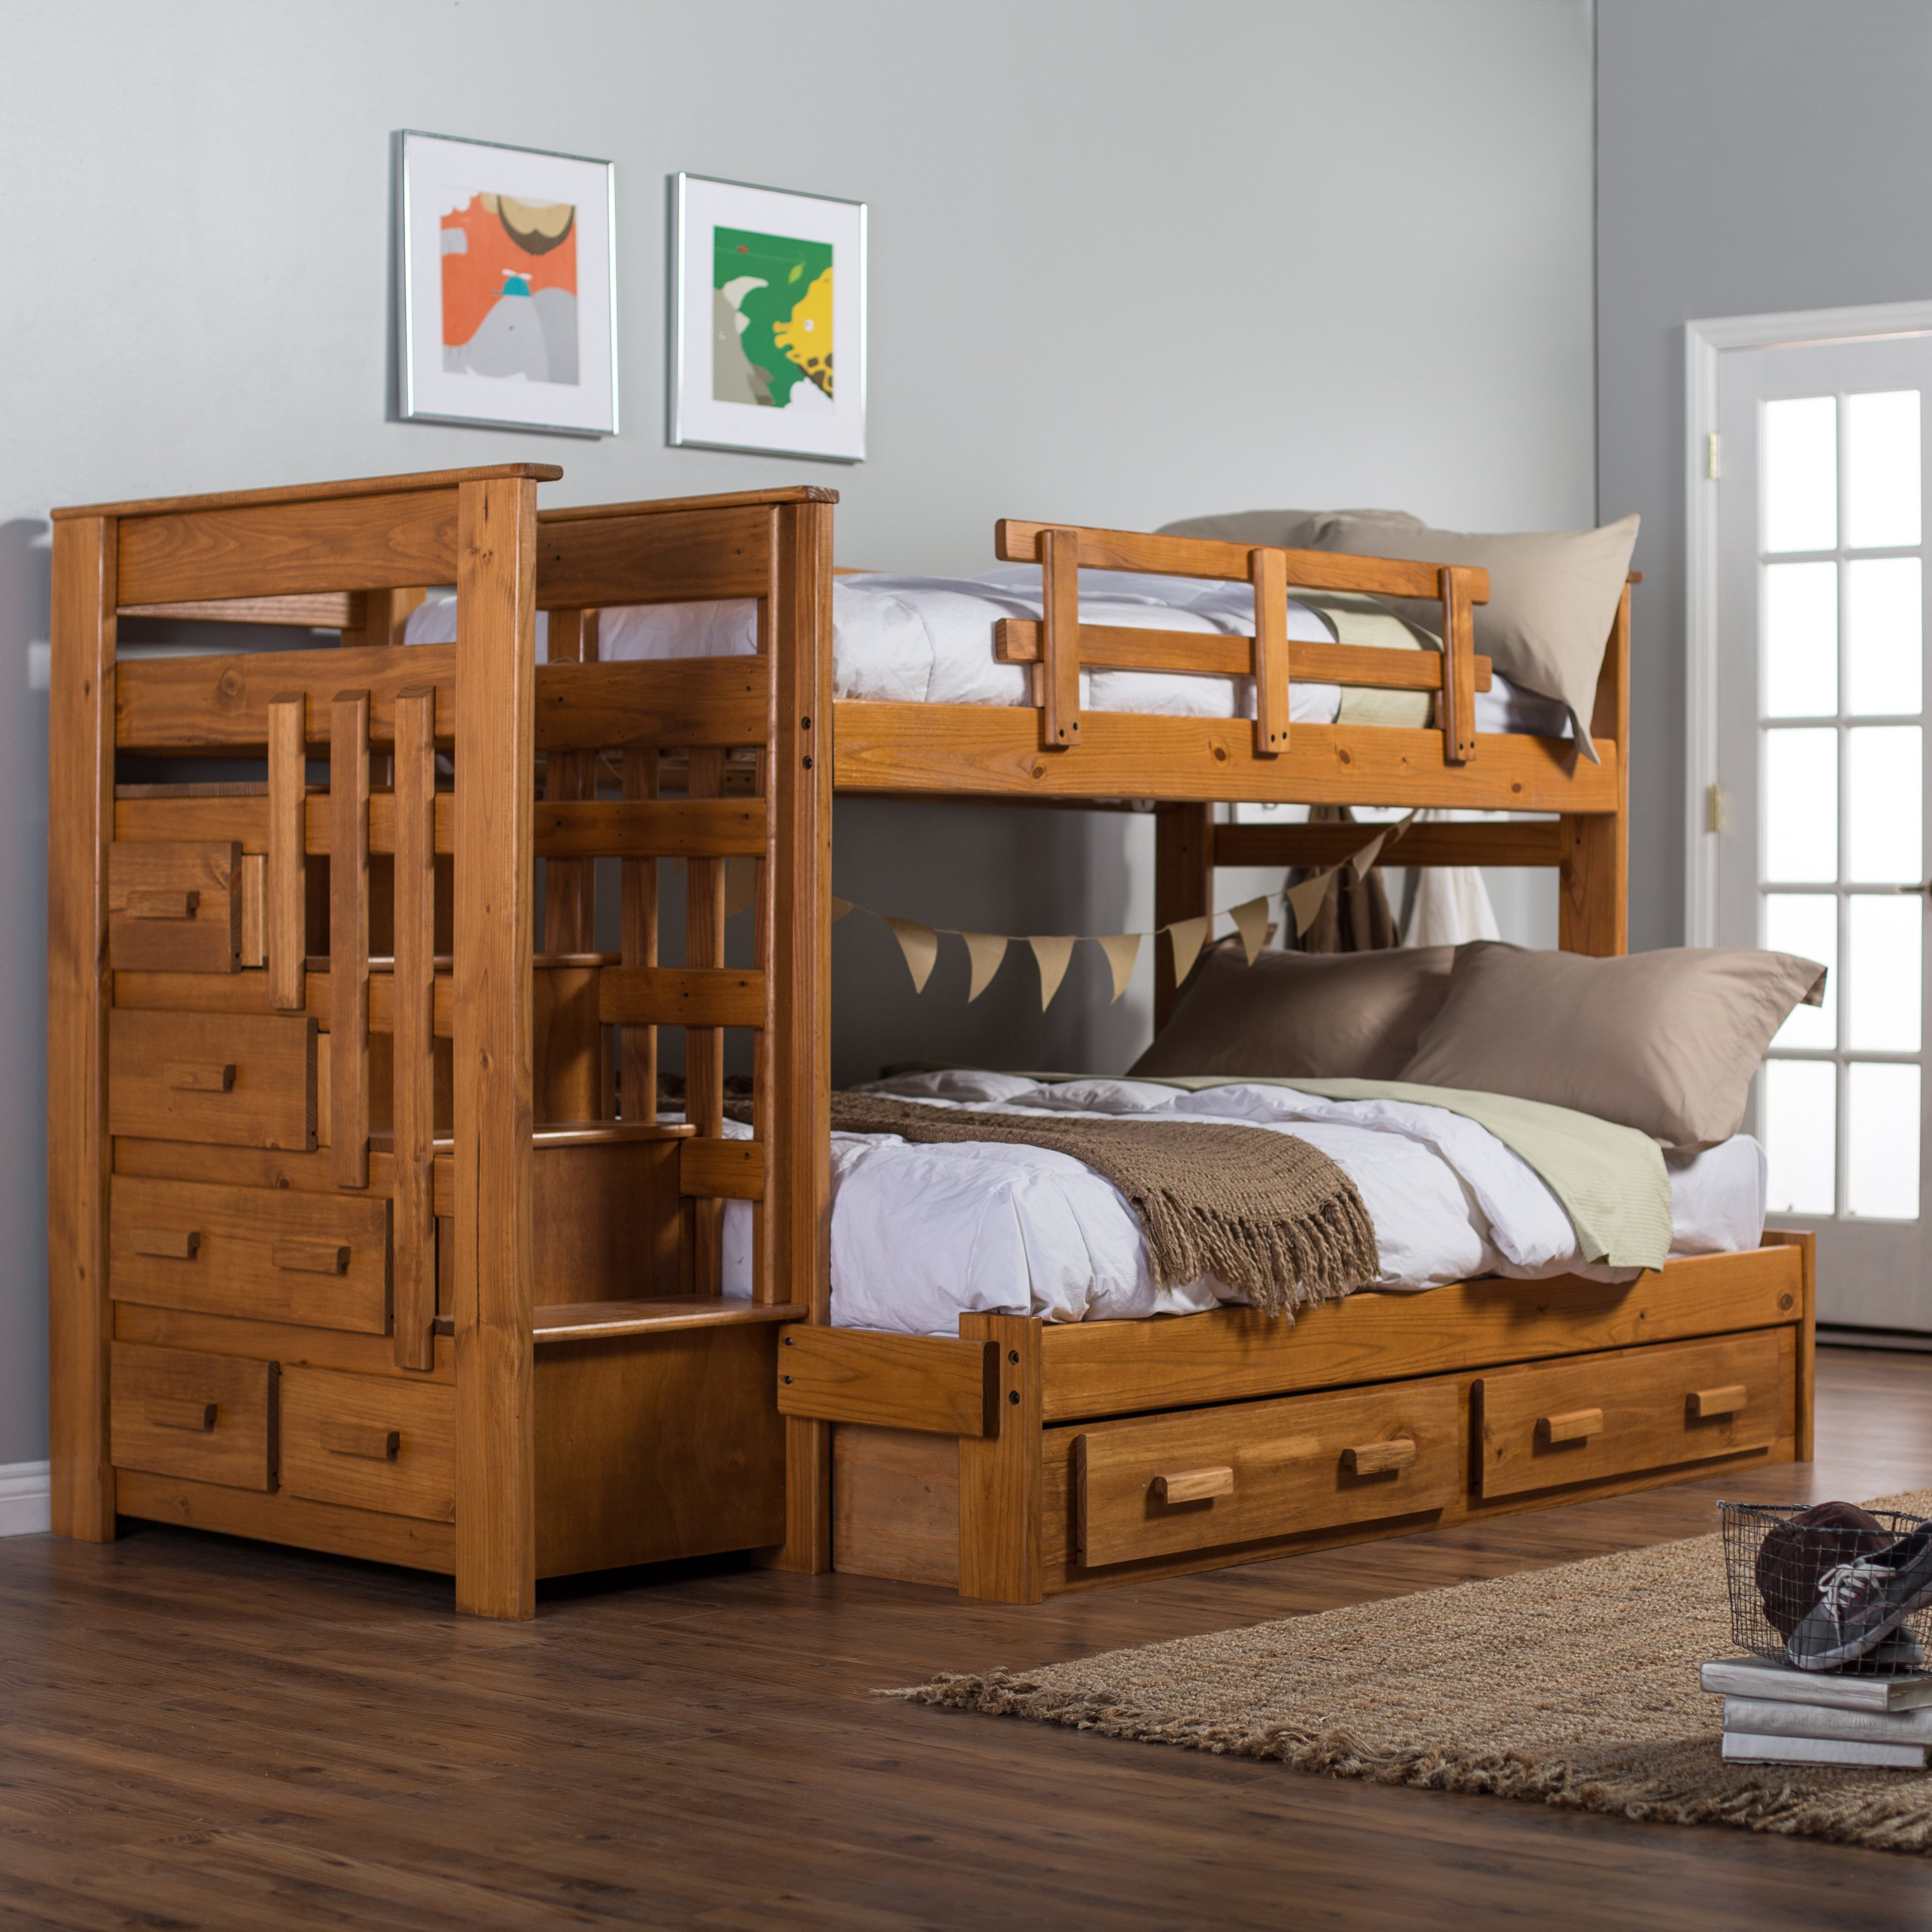 wooden bunk beds with stairs and drawers woodcrest heartland twin over full stairway bunk bed with optional XEUFTCP